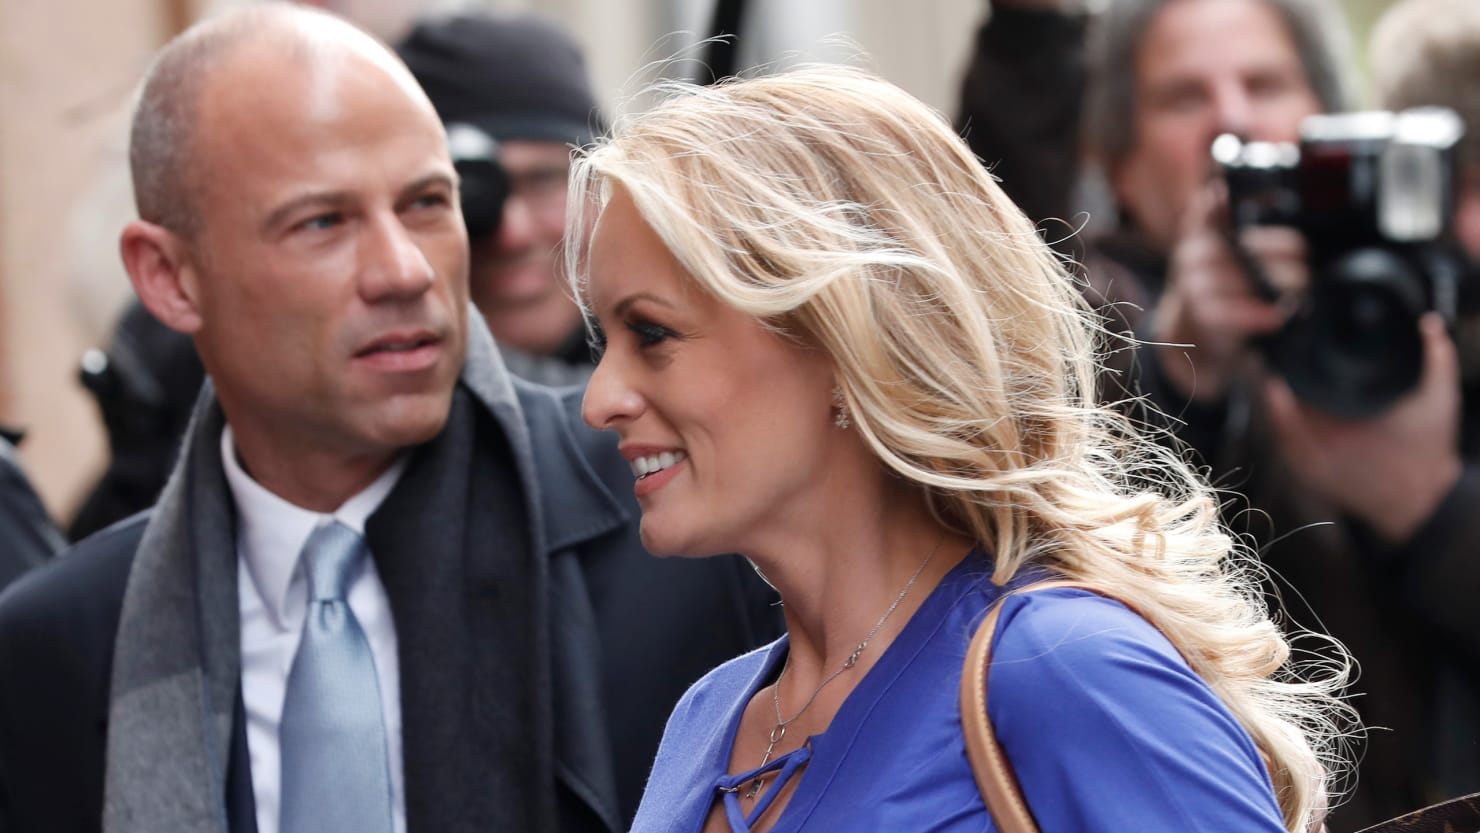 Columbus Auto Show >> Michael Avenatti: Stormy Daniels Arrested at Ohio Strip Club